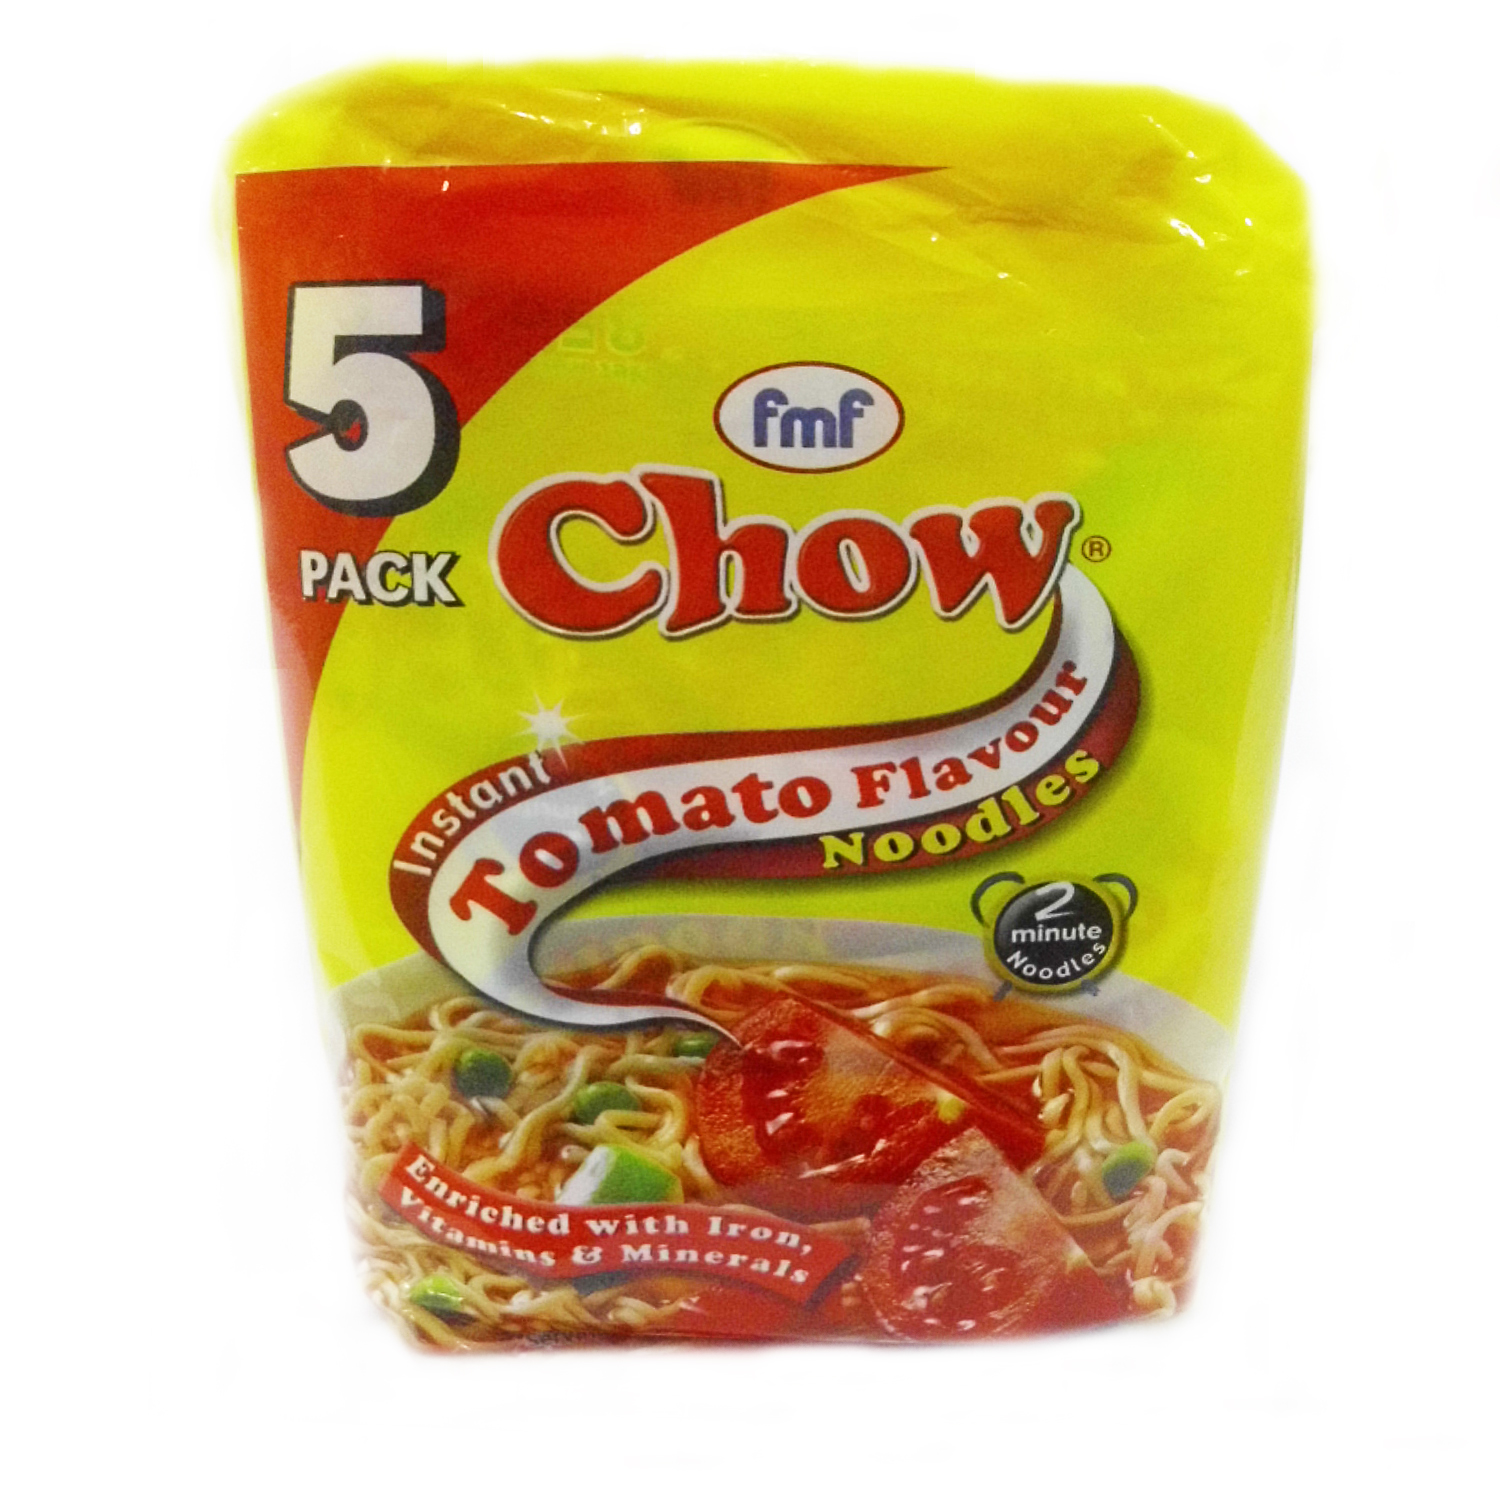 Chow Noodles - Tomato